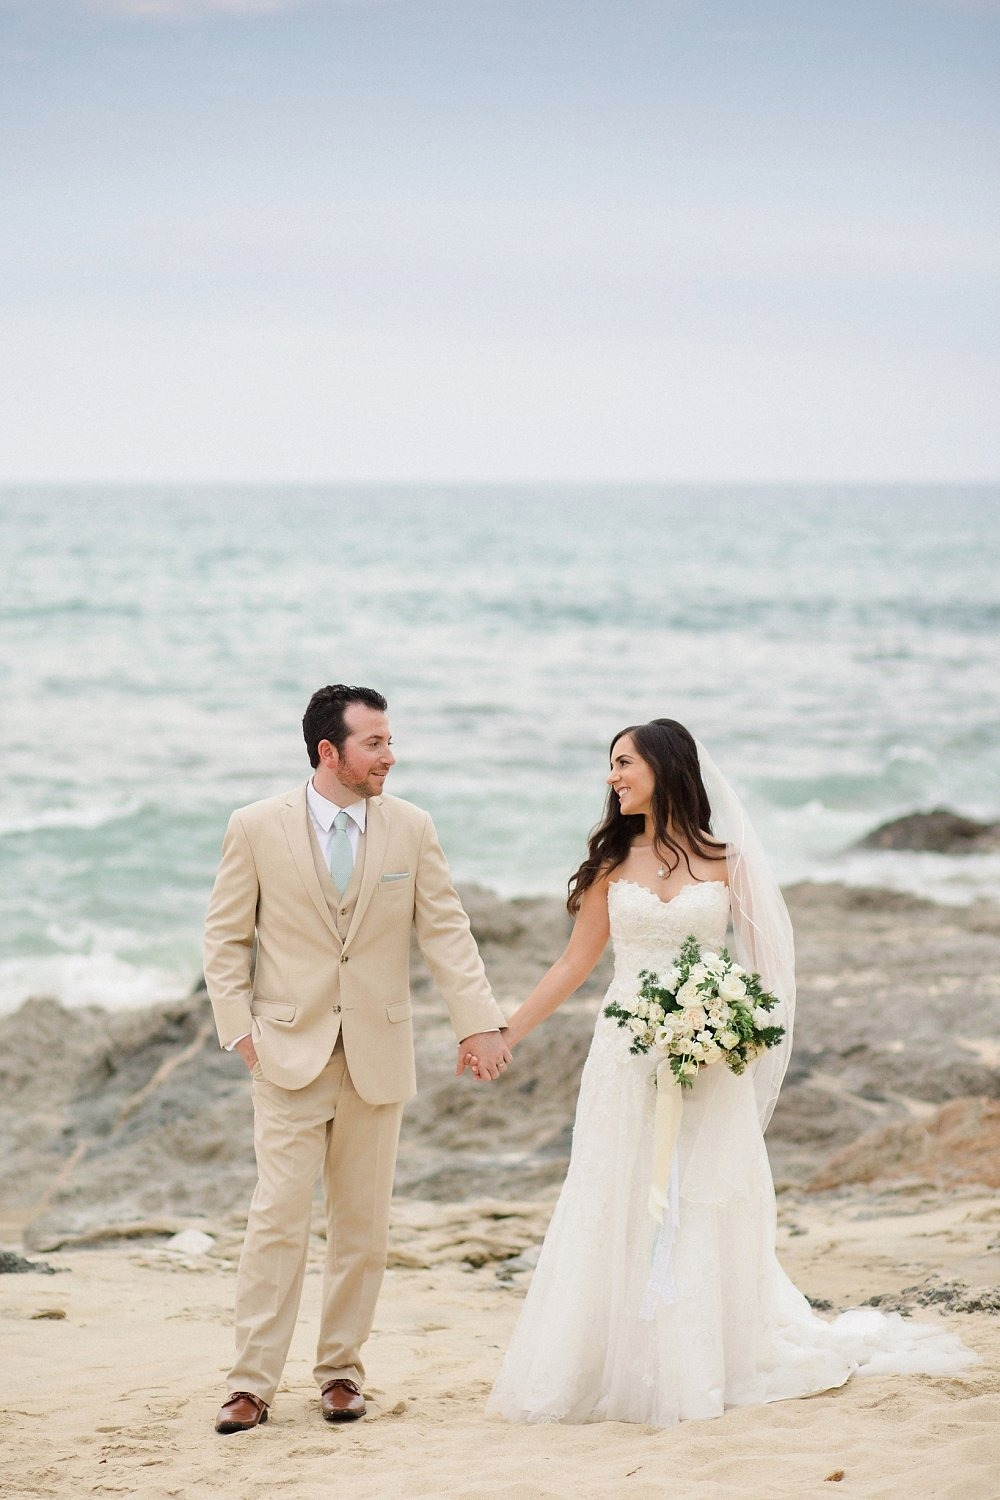 Pretty beach wedding